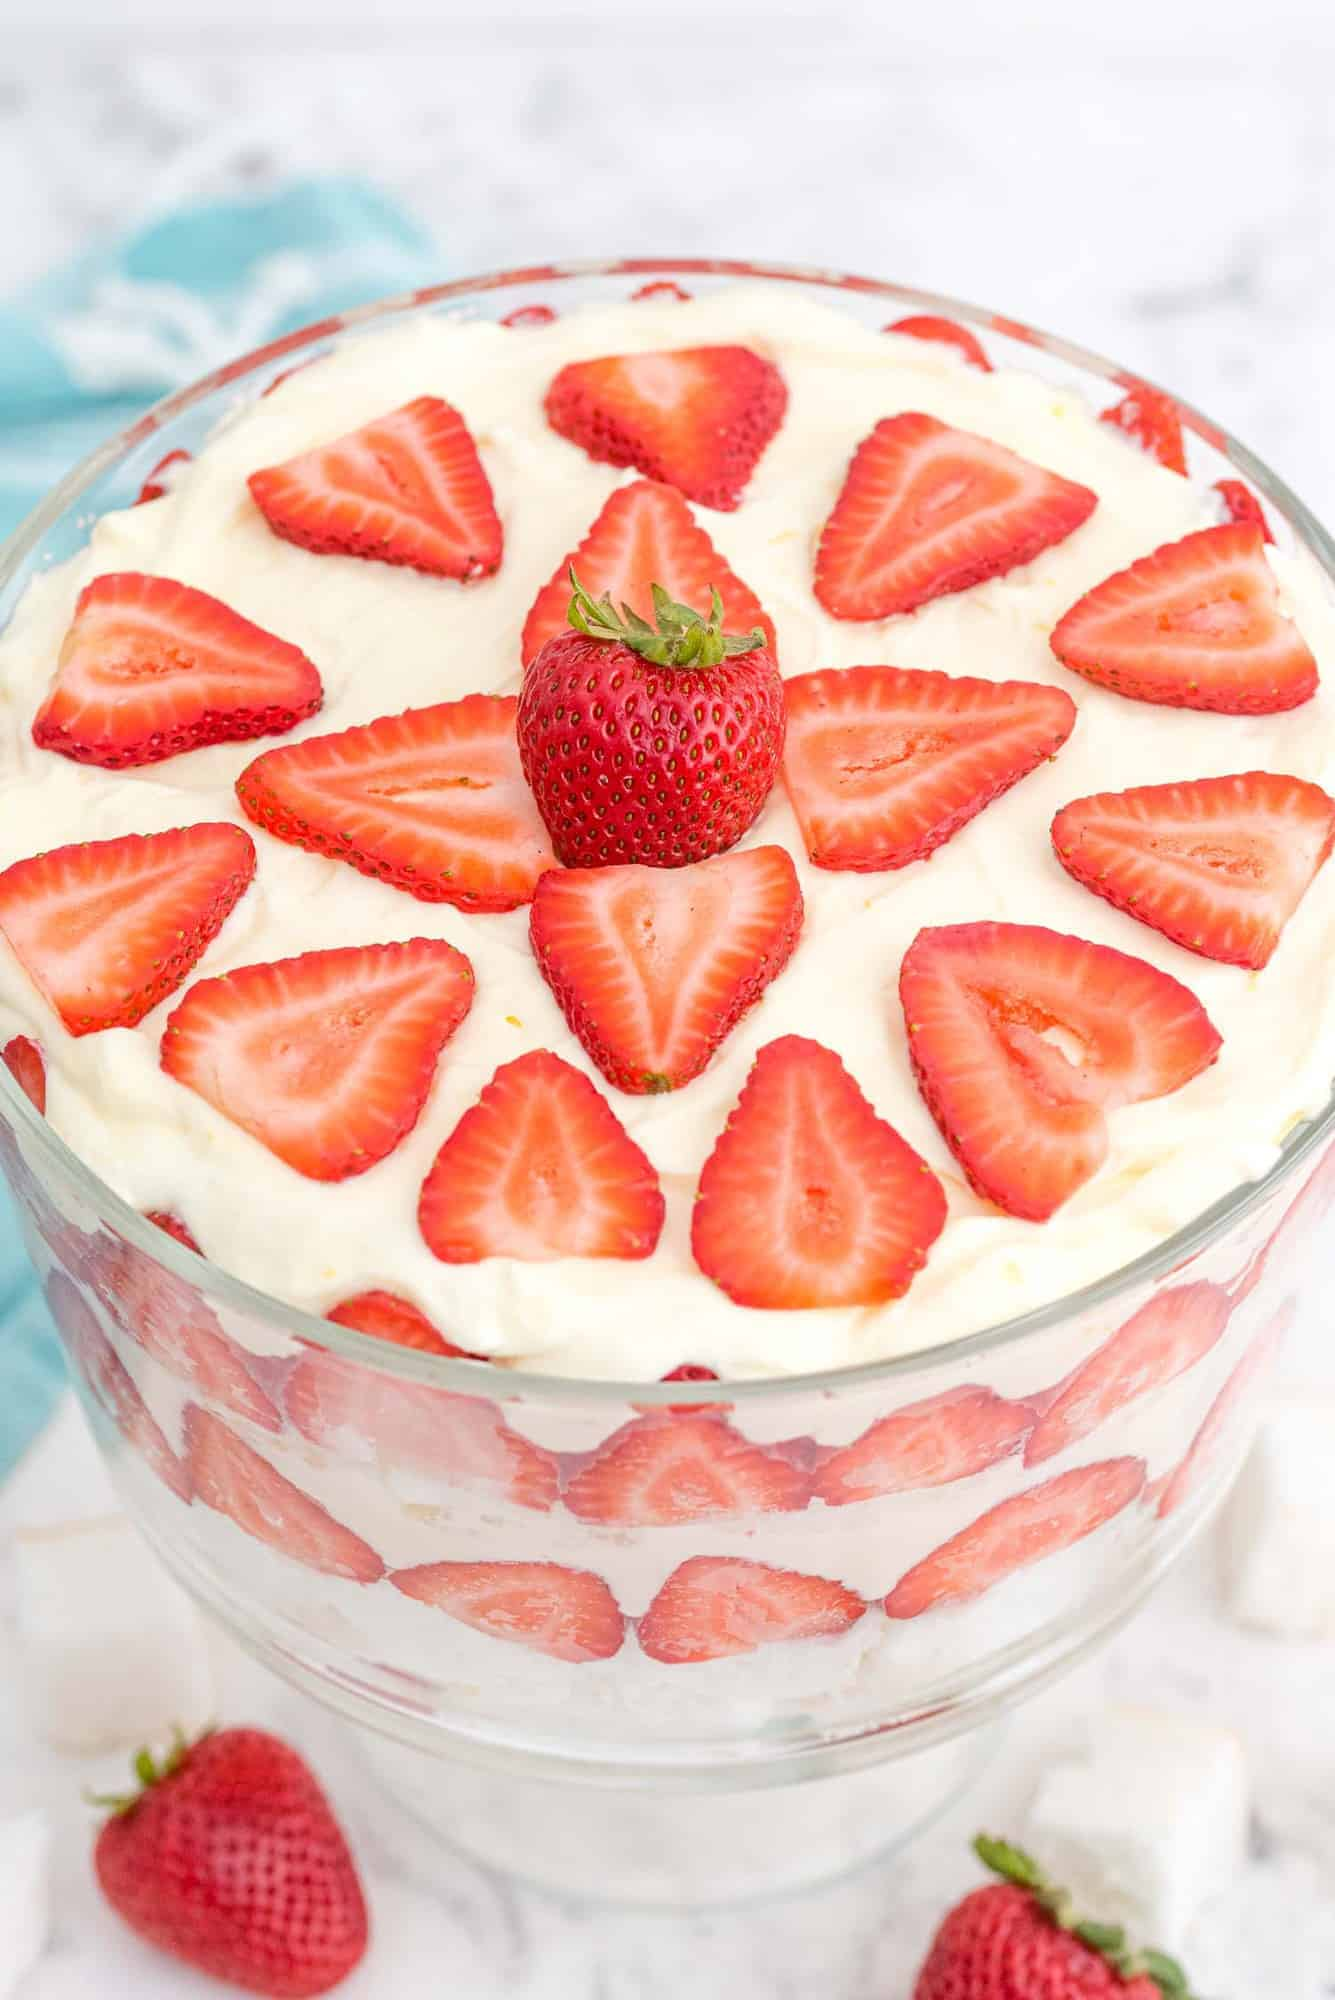 Trifle, decoratively topped with strawberries, viewed from above.